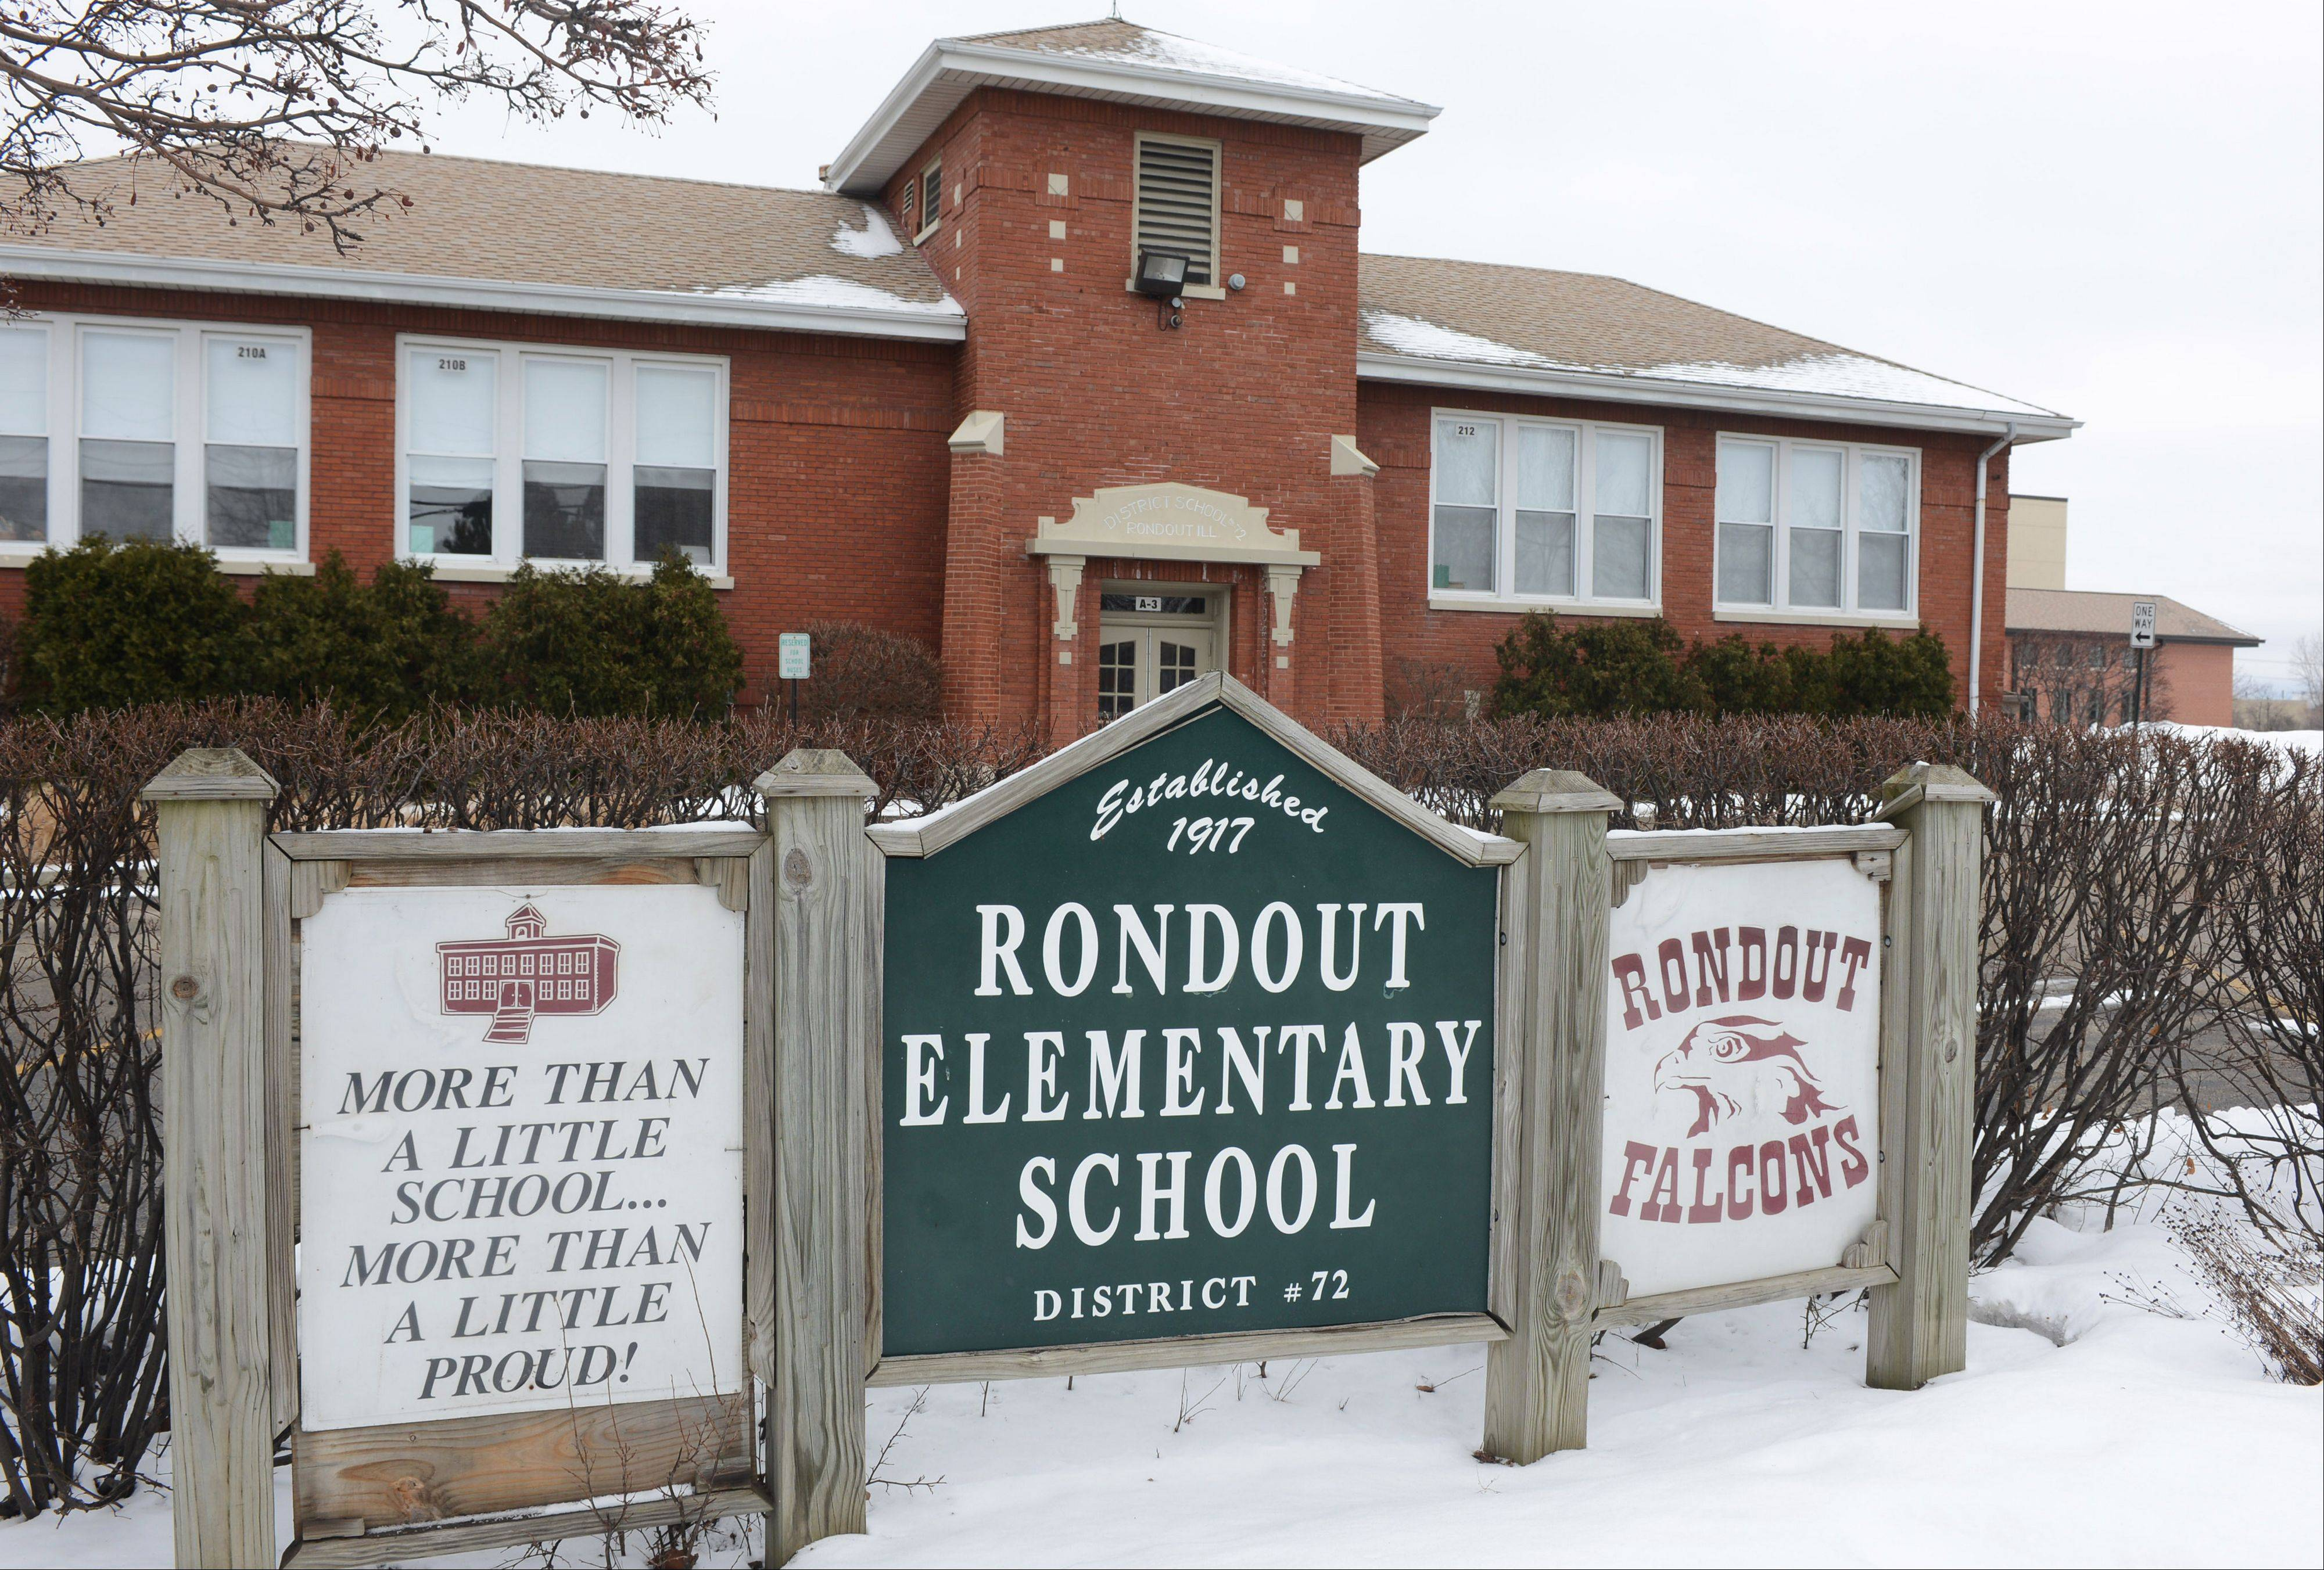 Rondout Elementary District 72 will collect $30,381 in property taxes per student this year, while East Aurora Unit District 131 has a property tax collection level of $2,816 per student.